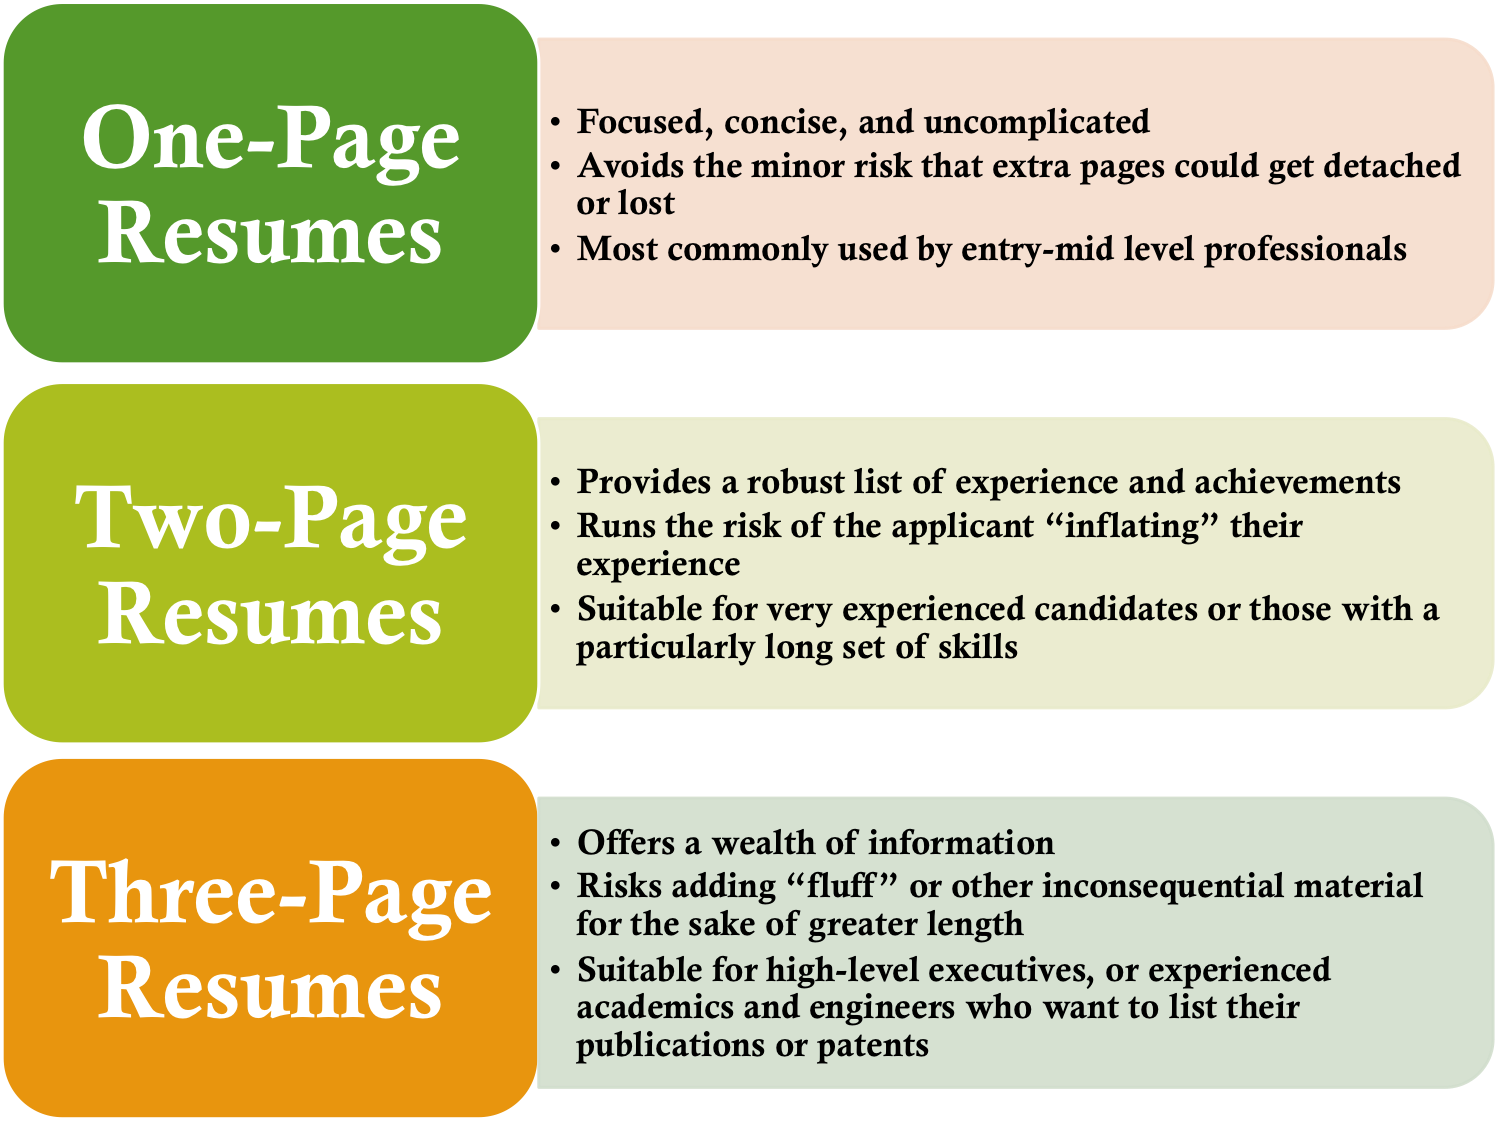 resume Resume Fonts resume aesthetics font margins and paper guidelines genius ideal length